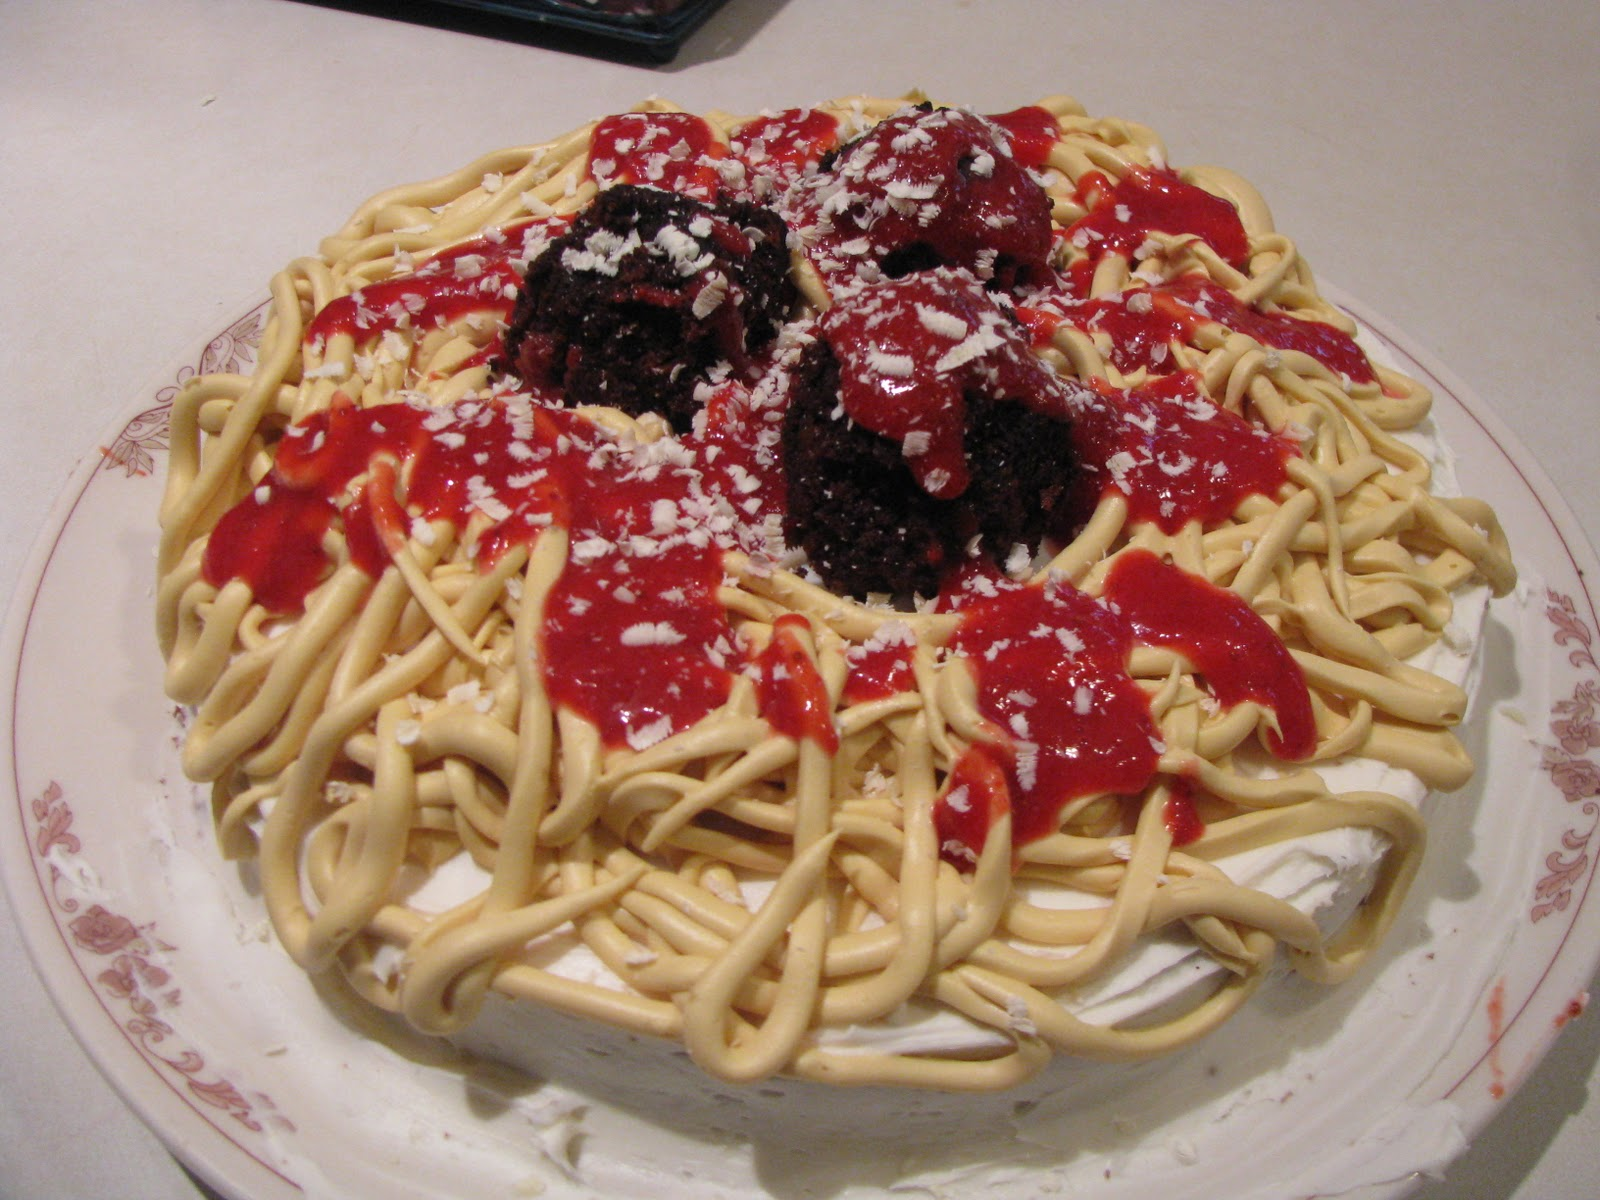 What's For Dinner?: April Fool's Edition: Spaghetti and Meatballs Cake